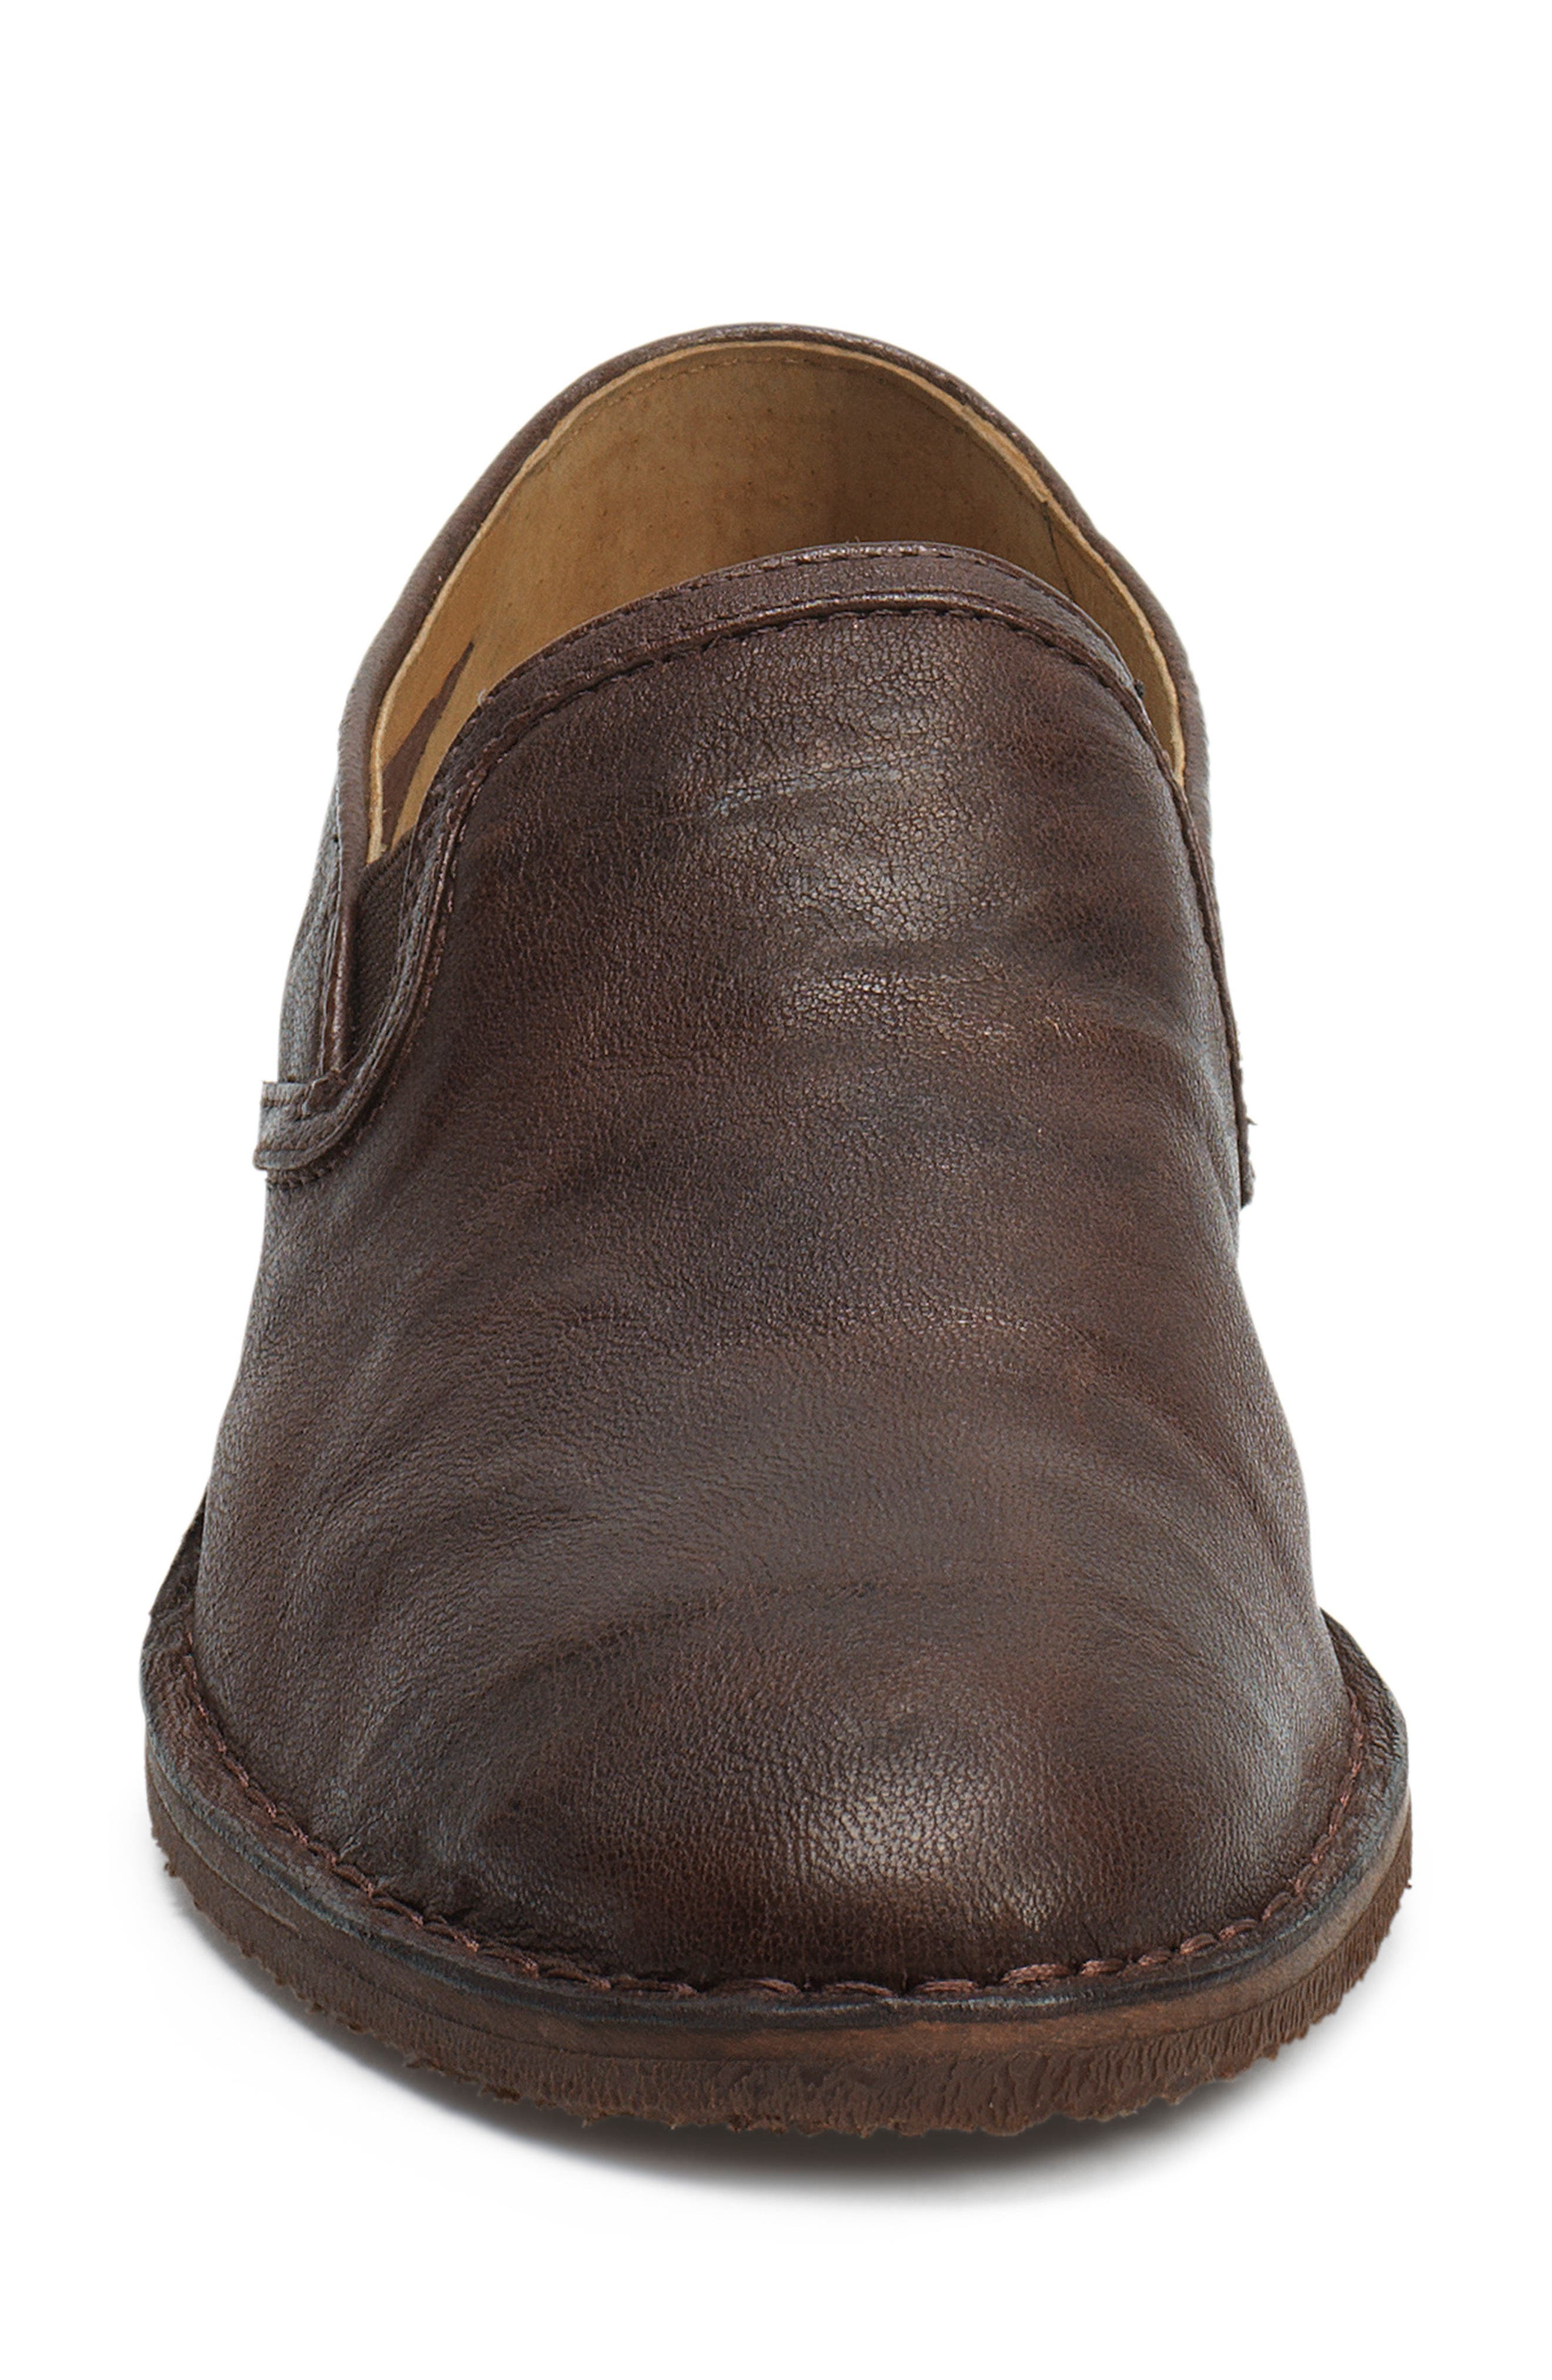 'Ali' Flat,                             Alternate thumbnail 4, color,                             BROWN LEATHER